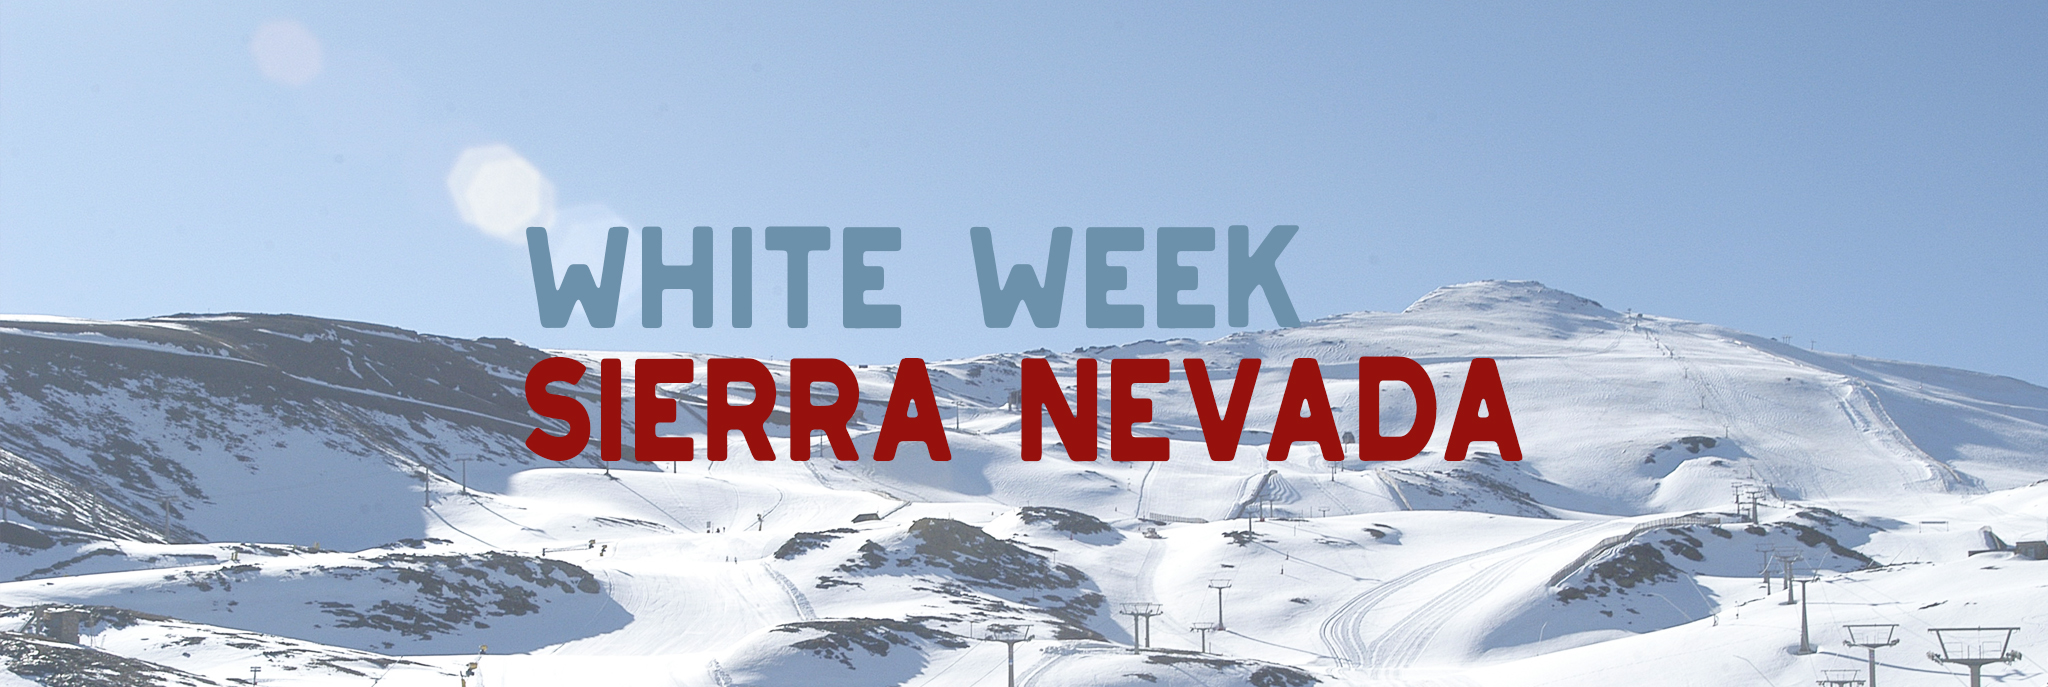 white-week-sierra-nevada